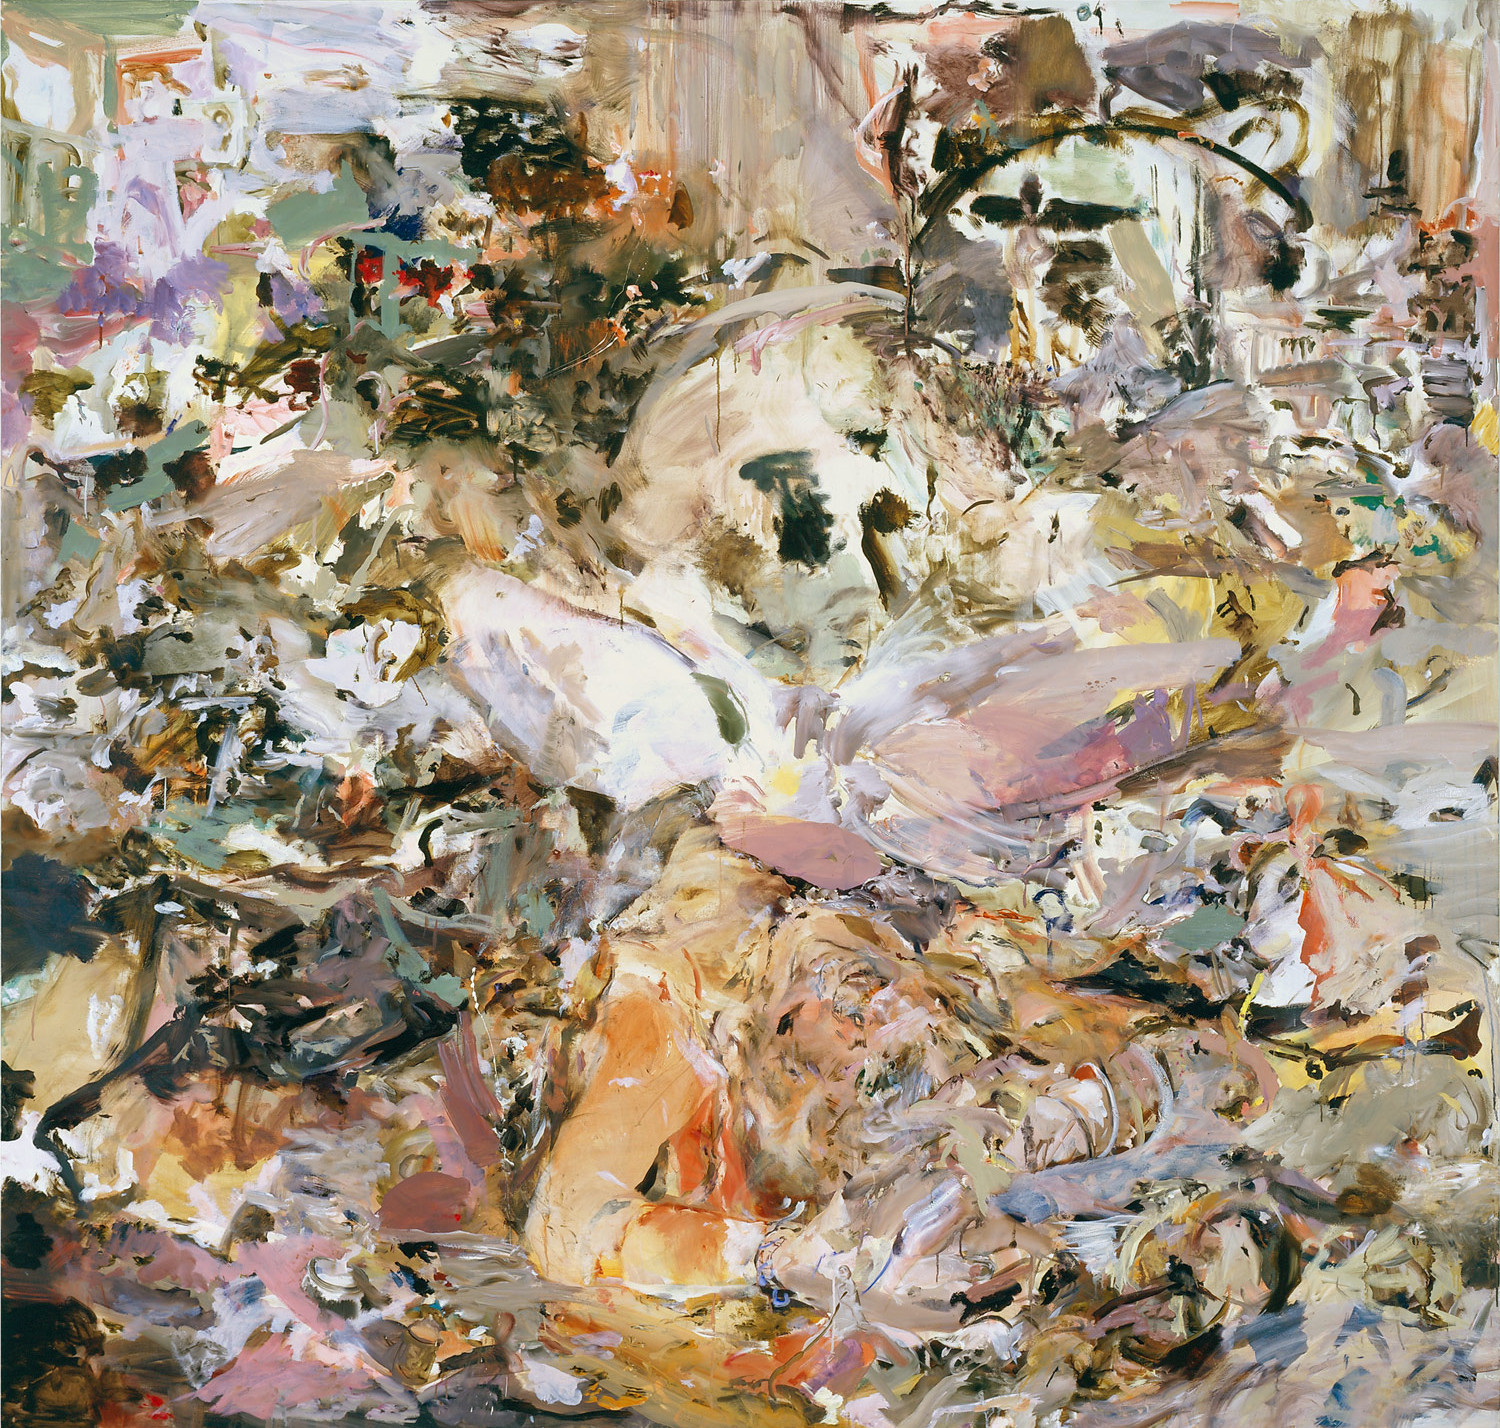 Cecily Brown, « Skulldiver IV », 2006-07, image ©Cecily Brown et Gagosian,